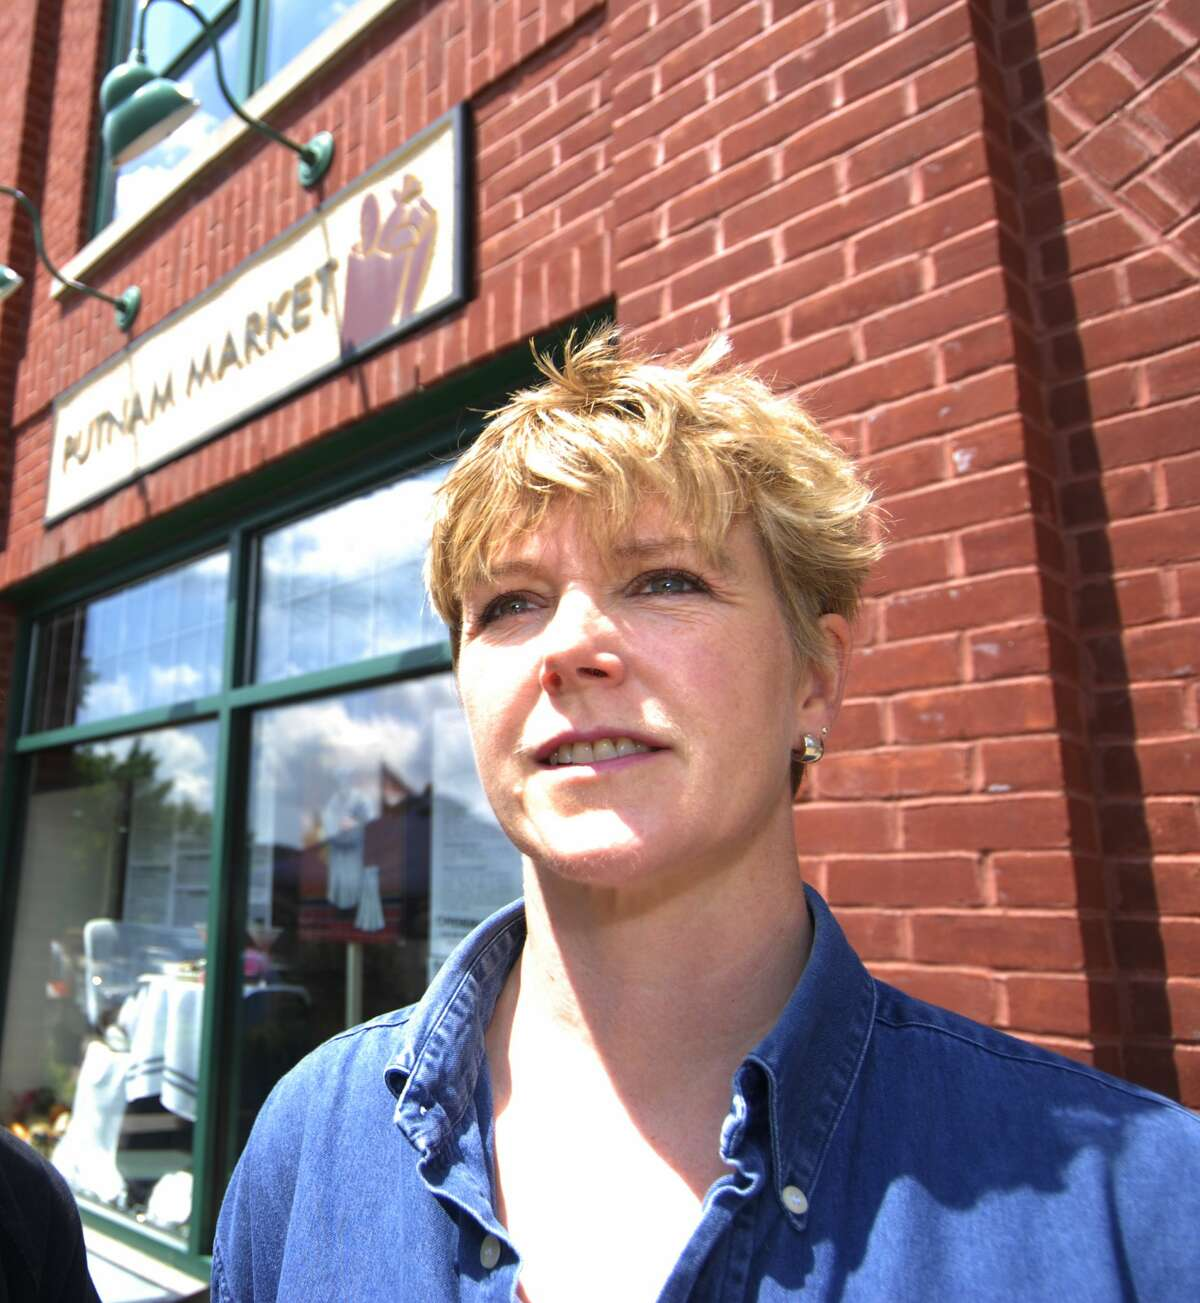 Putnam Market owner Catharine Hamilton in front of the store in June 2006. (Skip Dickstein/Times Union)